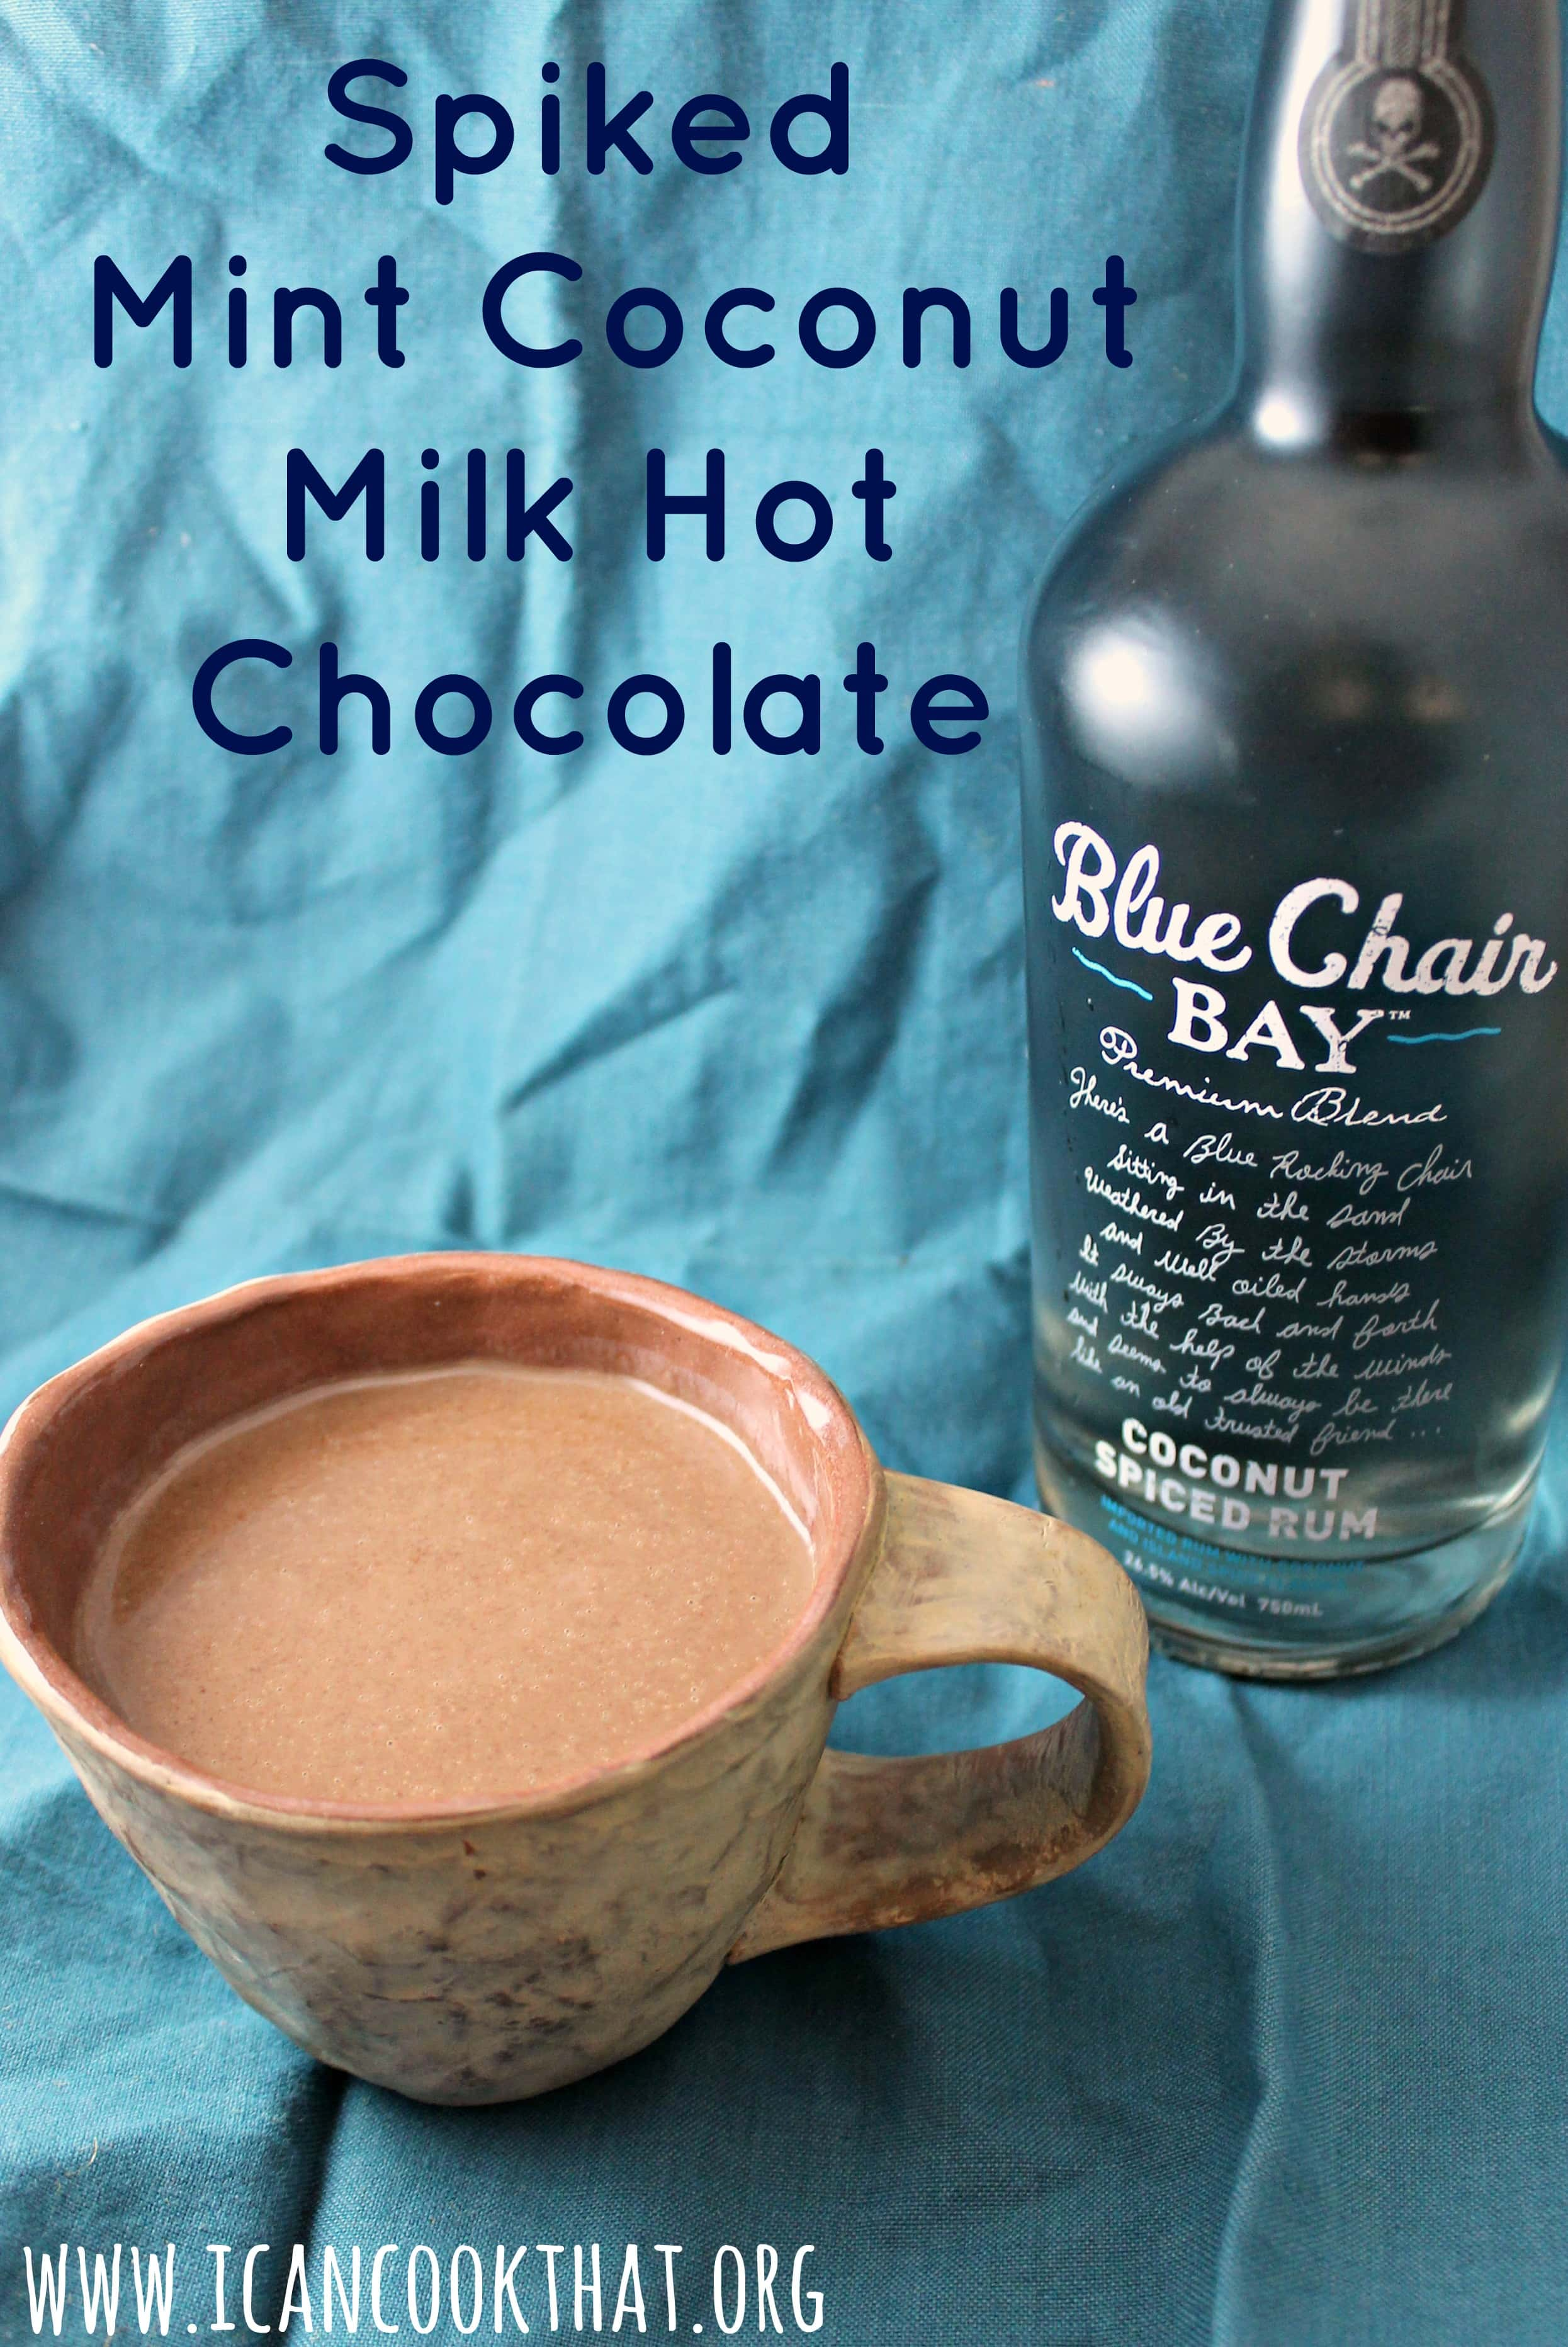 Spiked Mint Coconut Milk Hot Chocolate Recipe